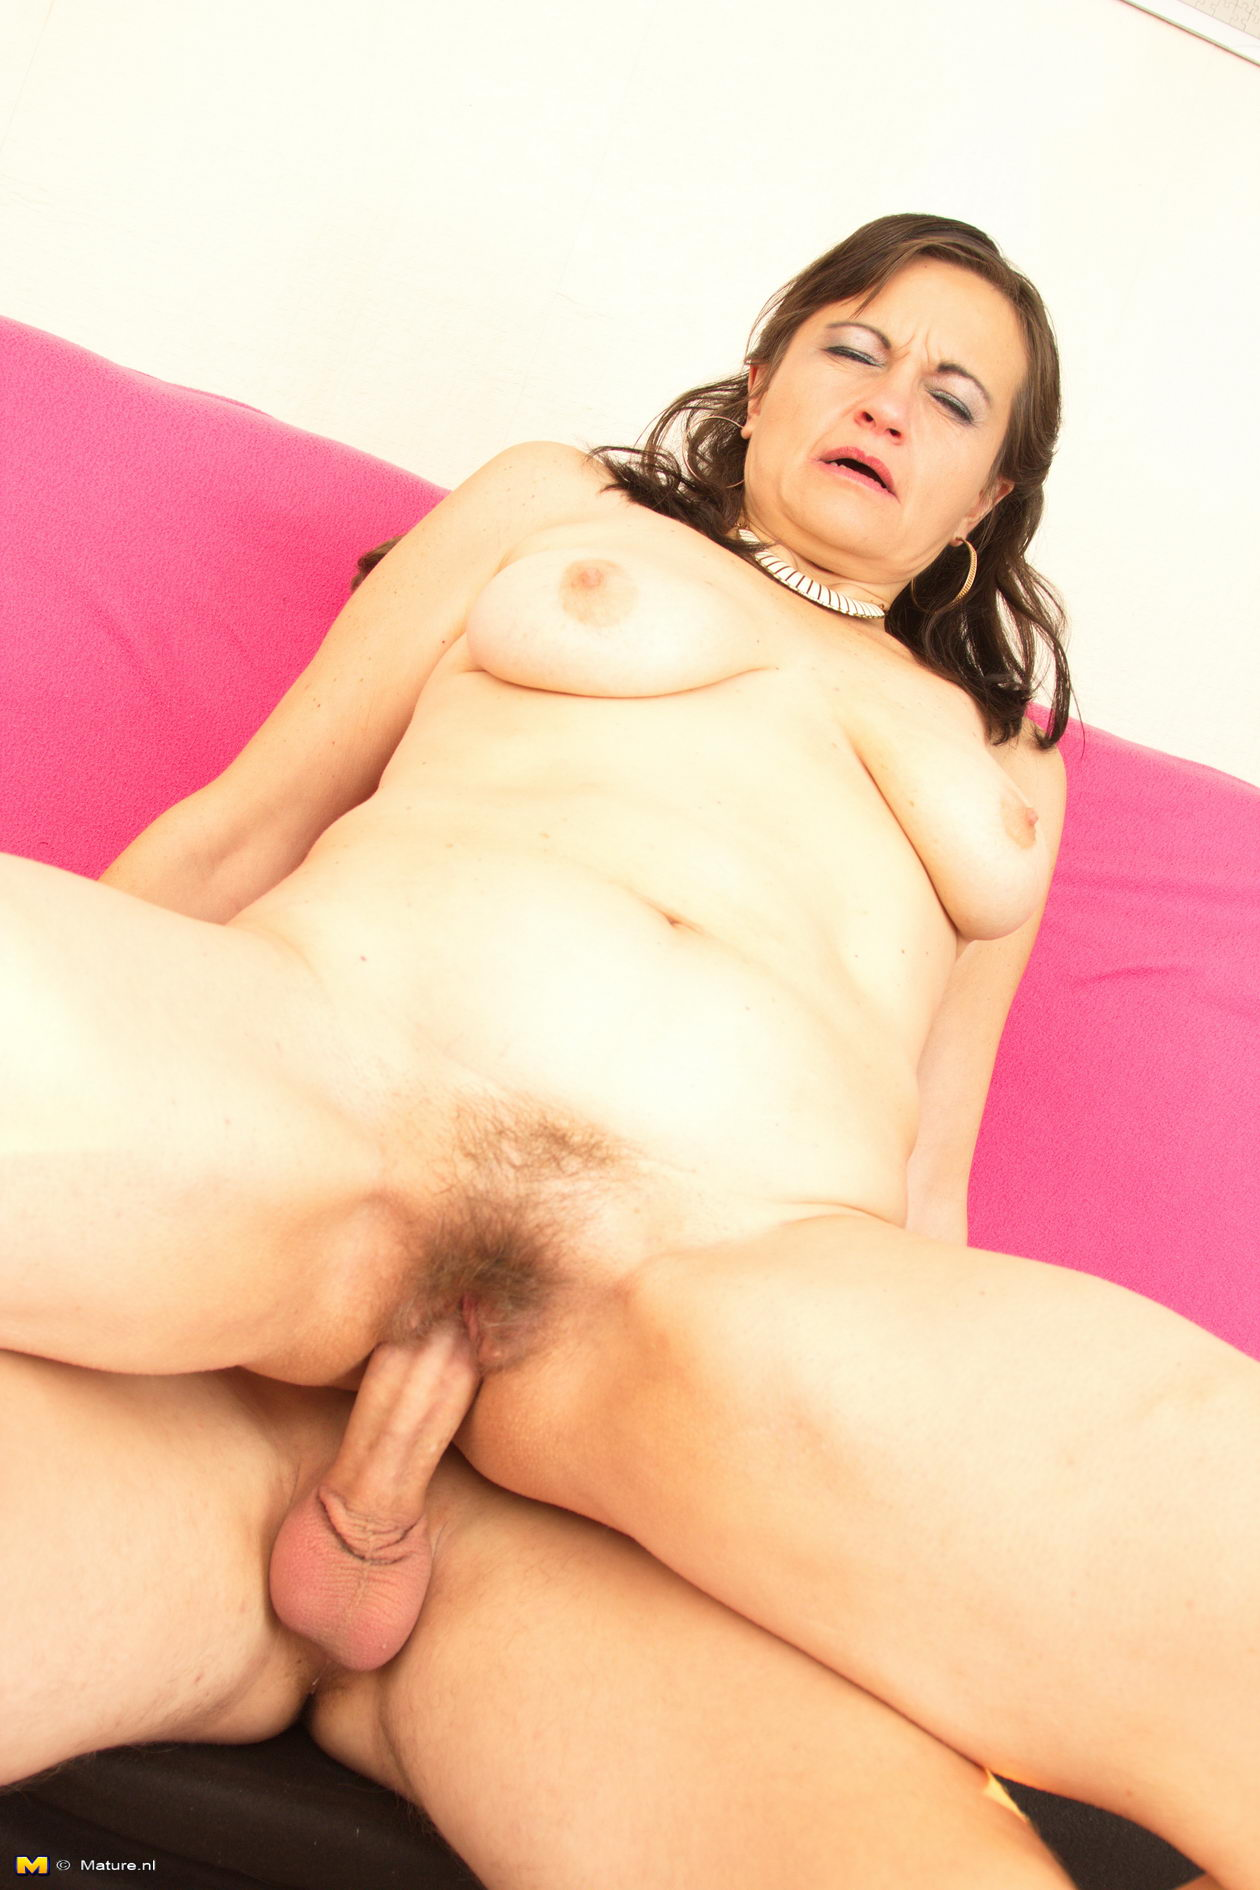 OLLIE: Mature mother fucking her toy boy